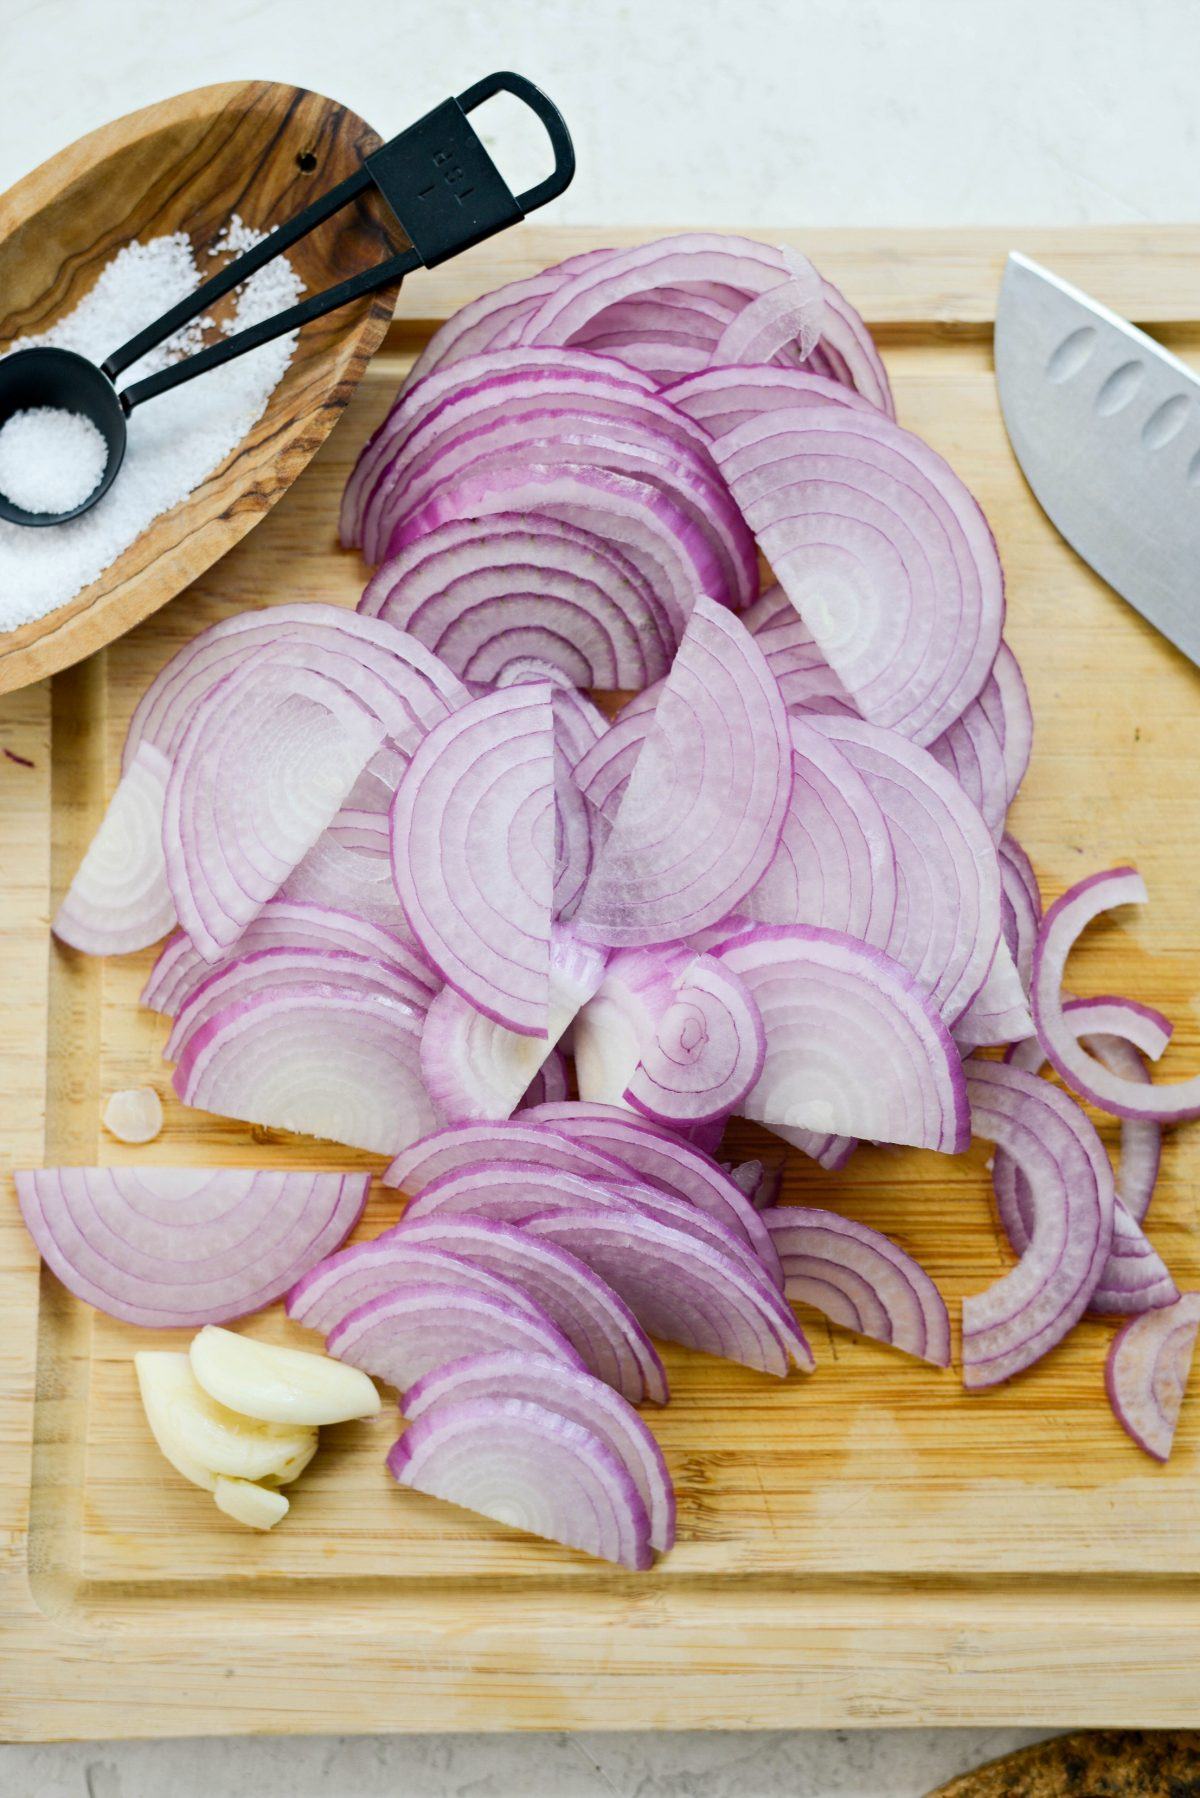 Quick Pickled Red Onions l SimplyScratch.com #homemade #pickled #redonions #condiments #preserving #pickling